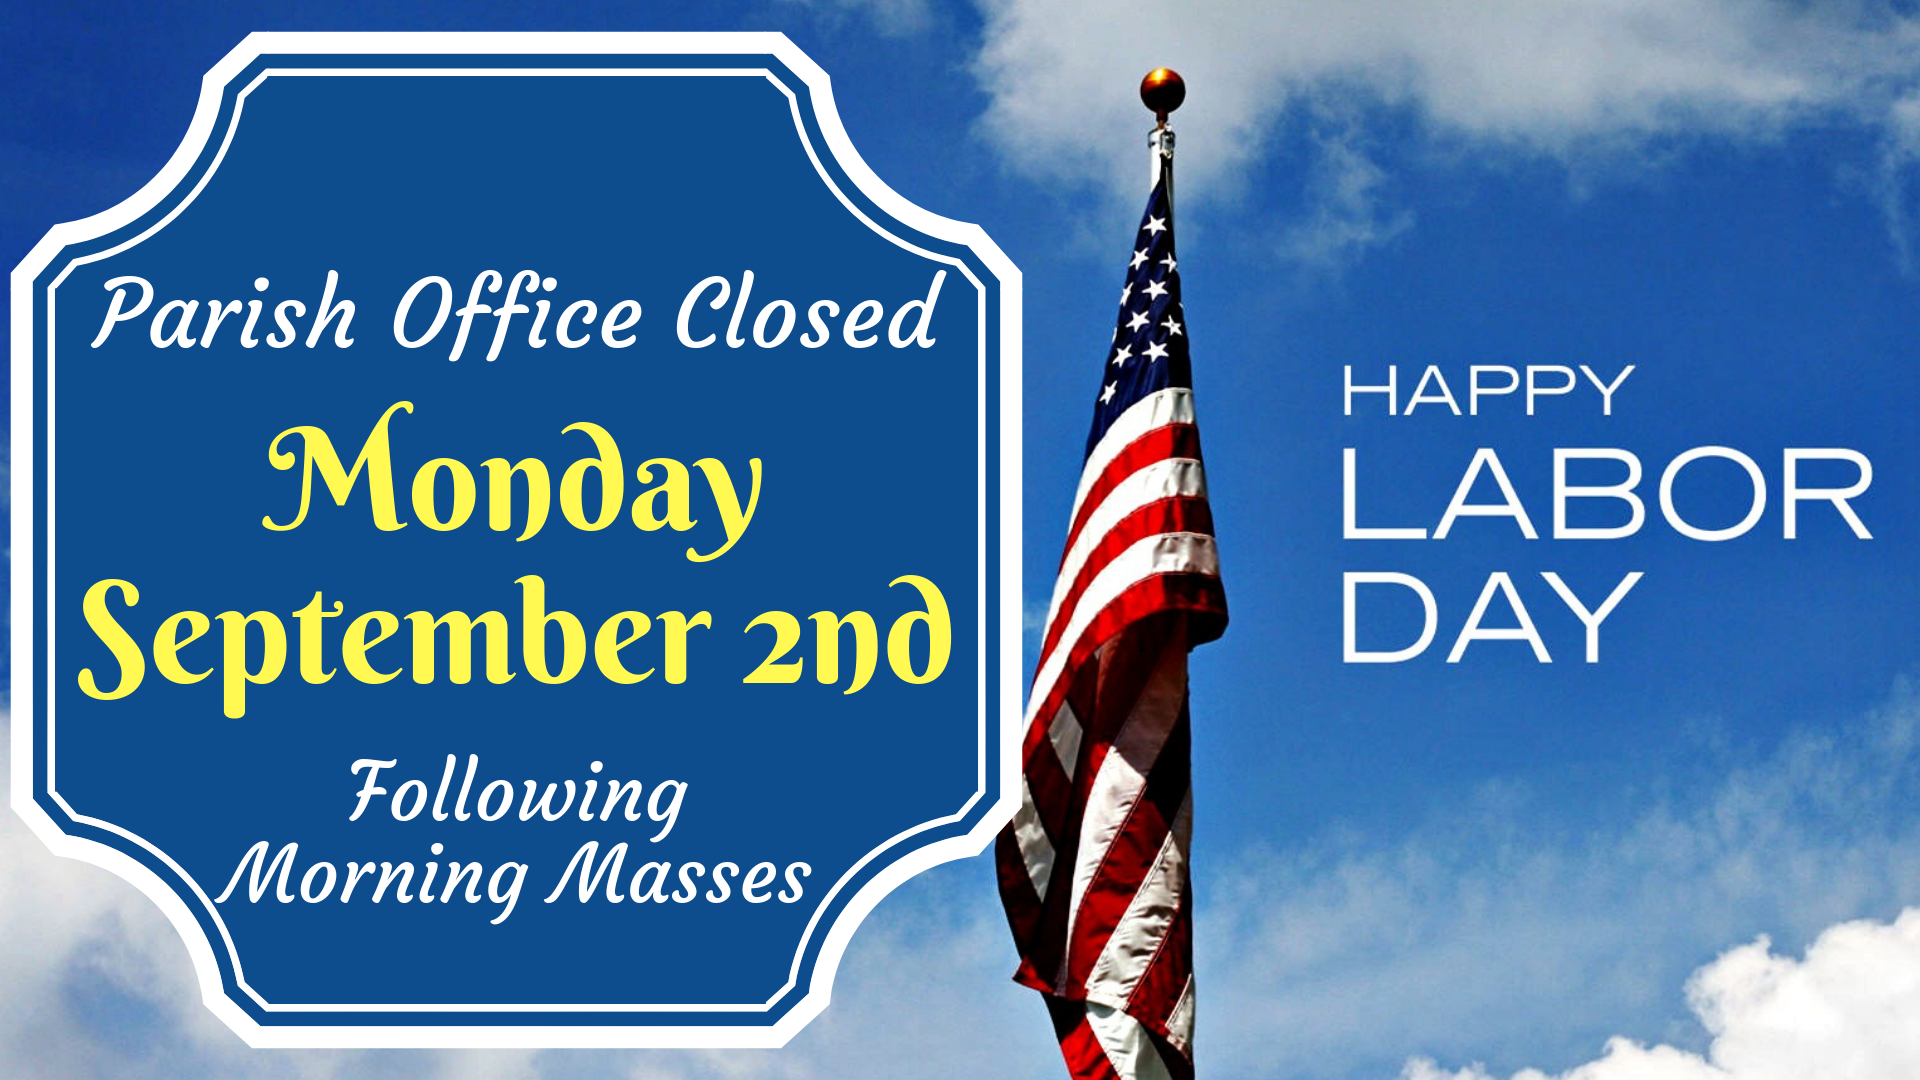 Parish Office Closed LABOR DAY(1).png